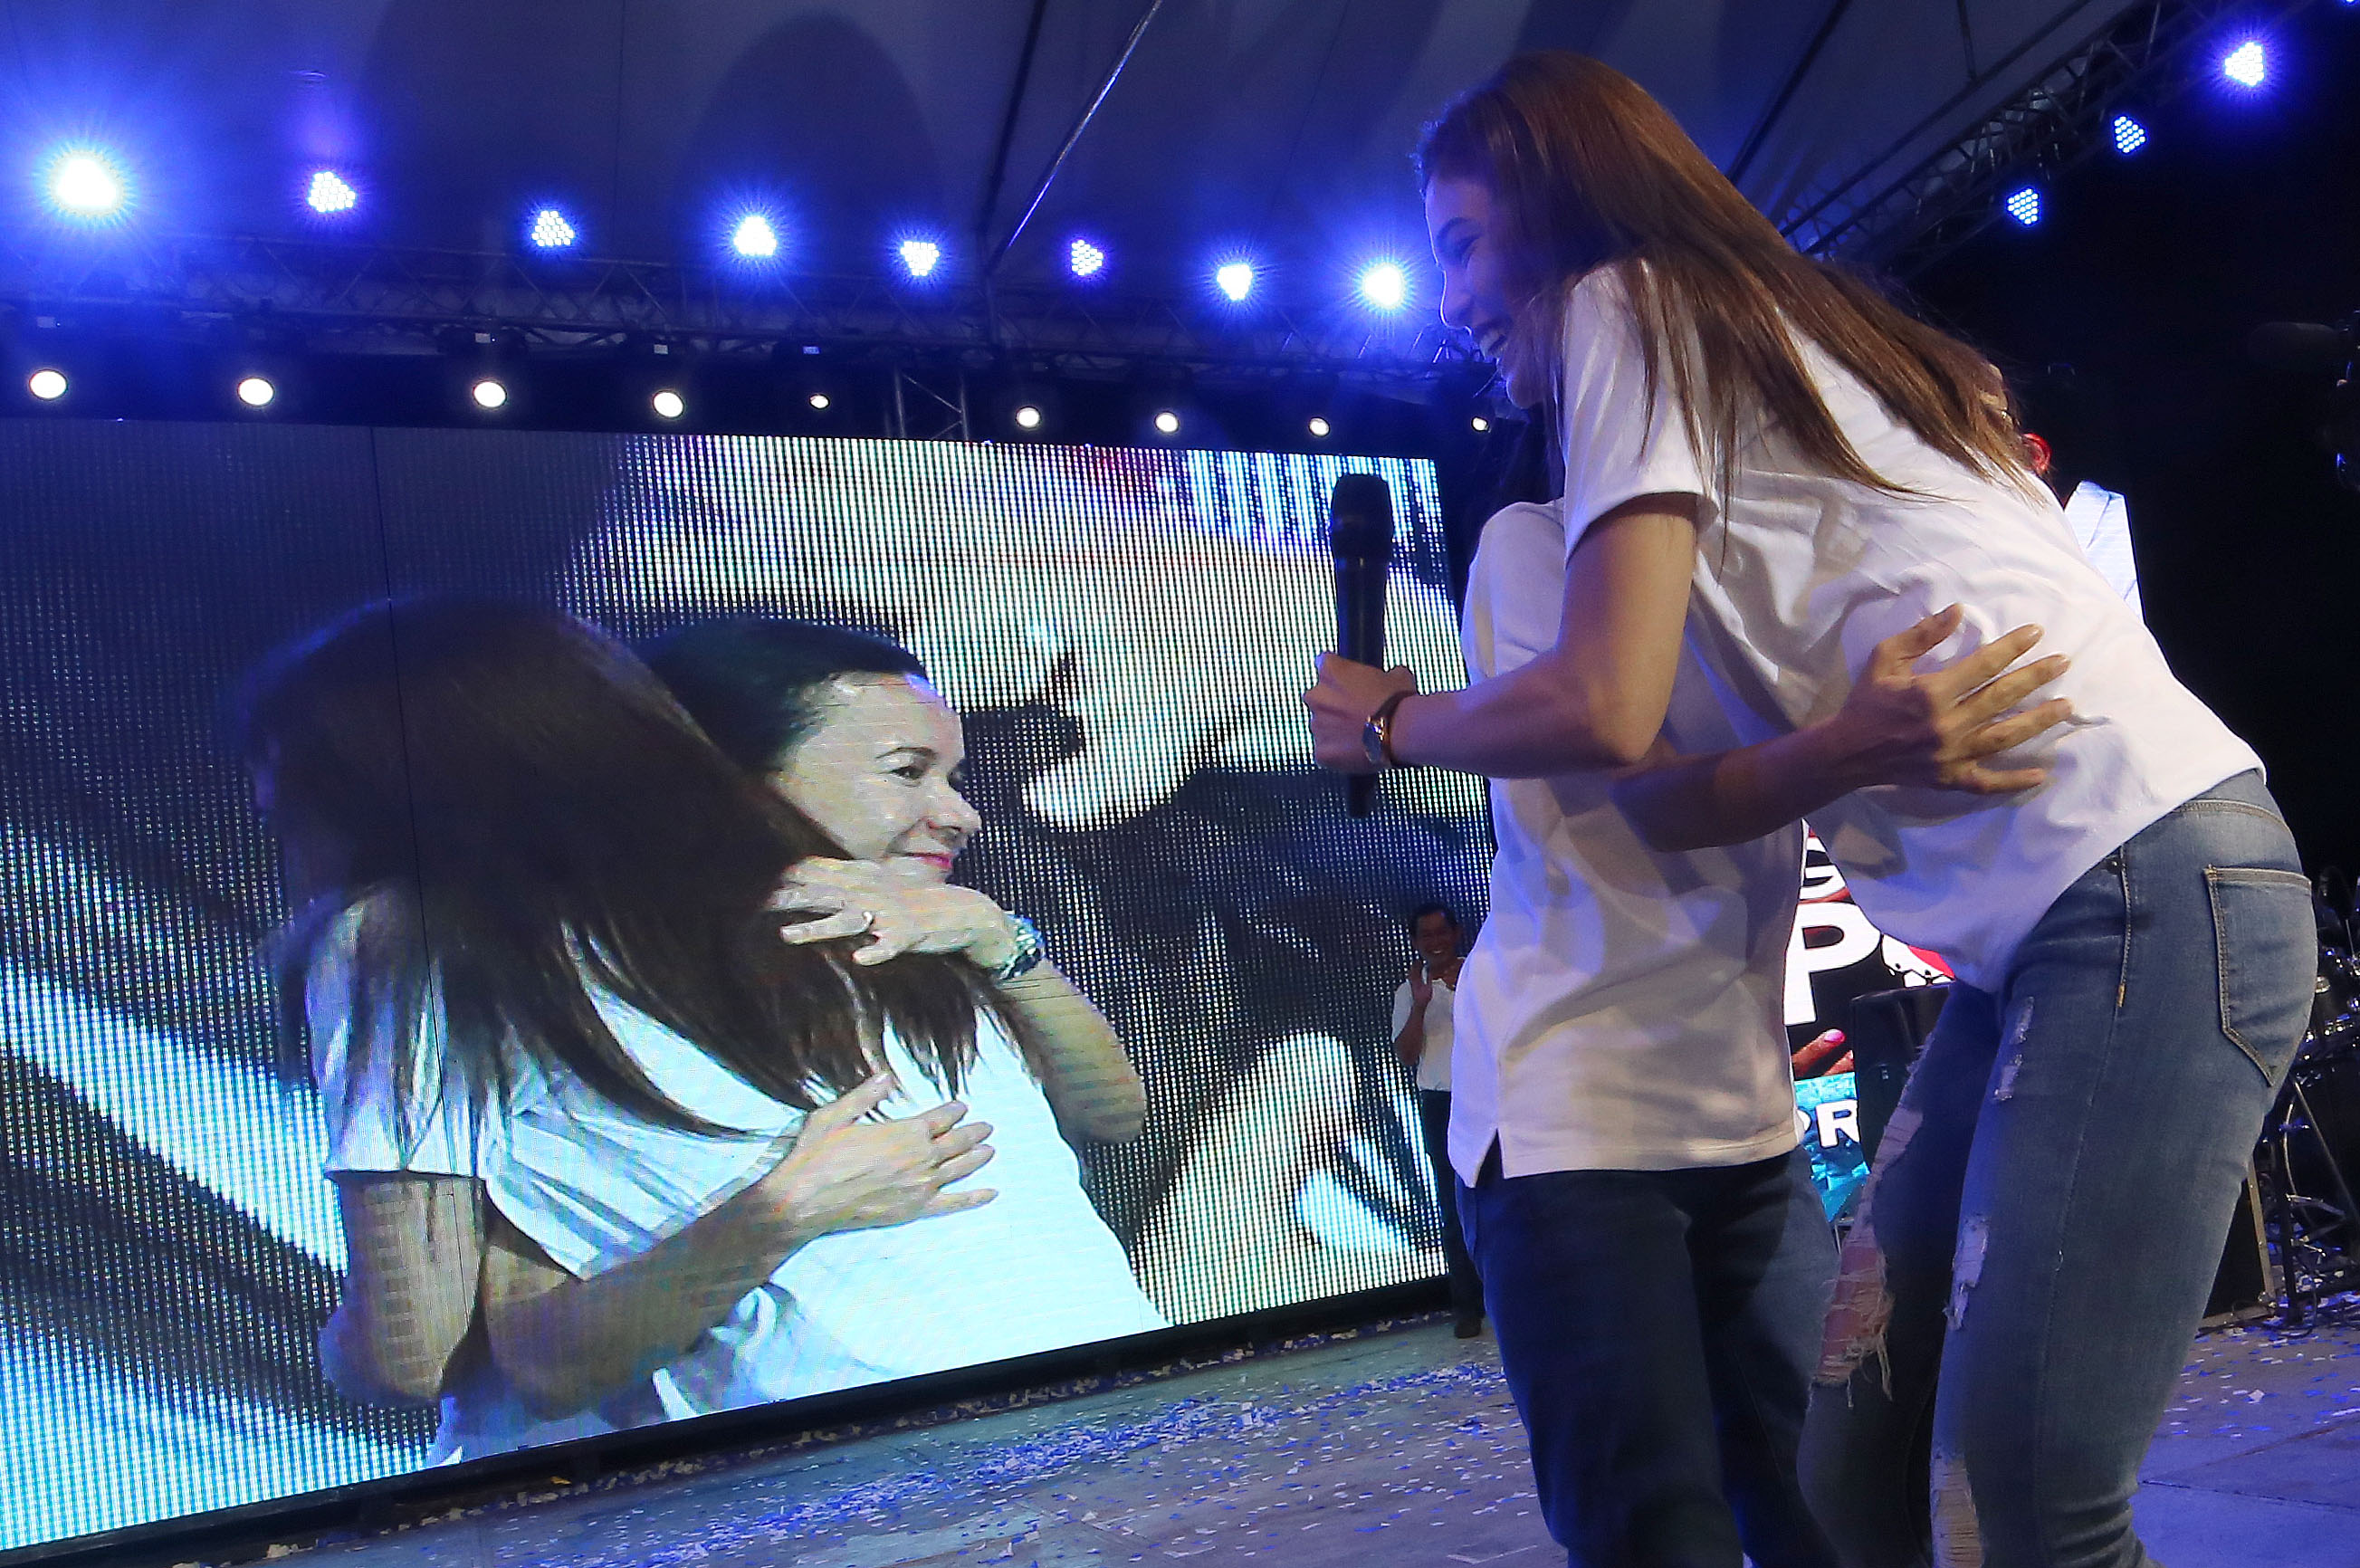 SURPRISE. Presidential candidate Grace Poe hugs her younger sister actress Lovi Poe, who joins her rally in Cagayan de Oro on April 20, 2016. The actress is wearing Poe's campaign shirt and logo. Photo by Jay Morales/Grace Poe Media Bureau